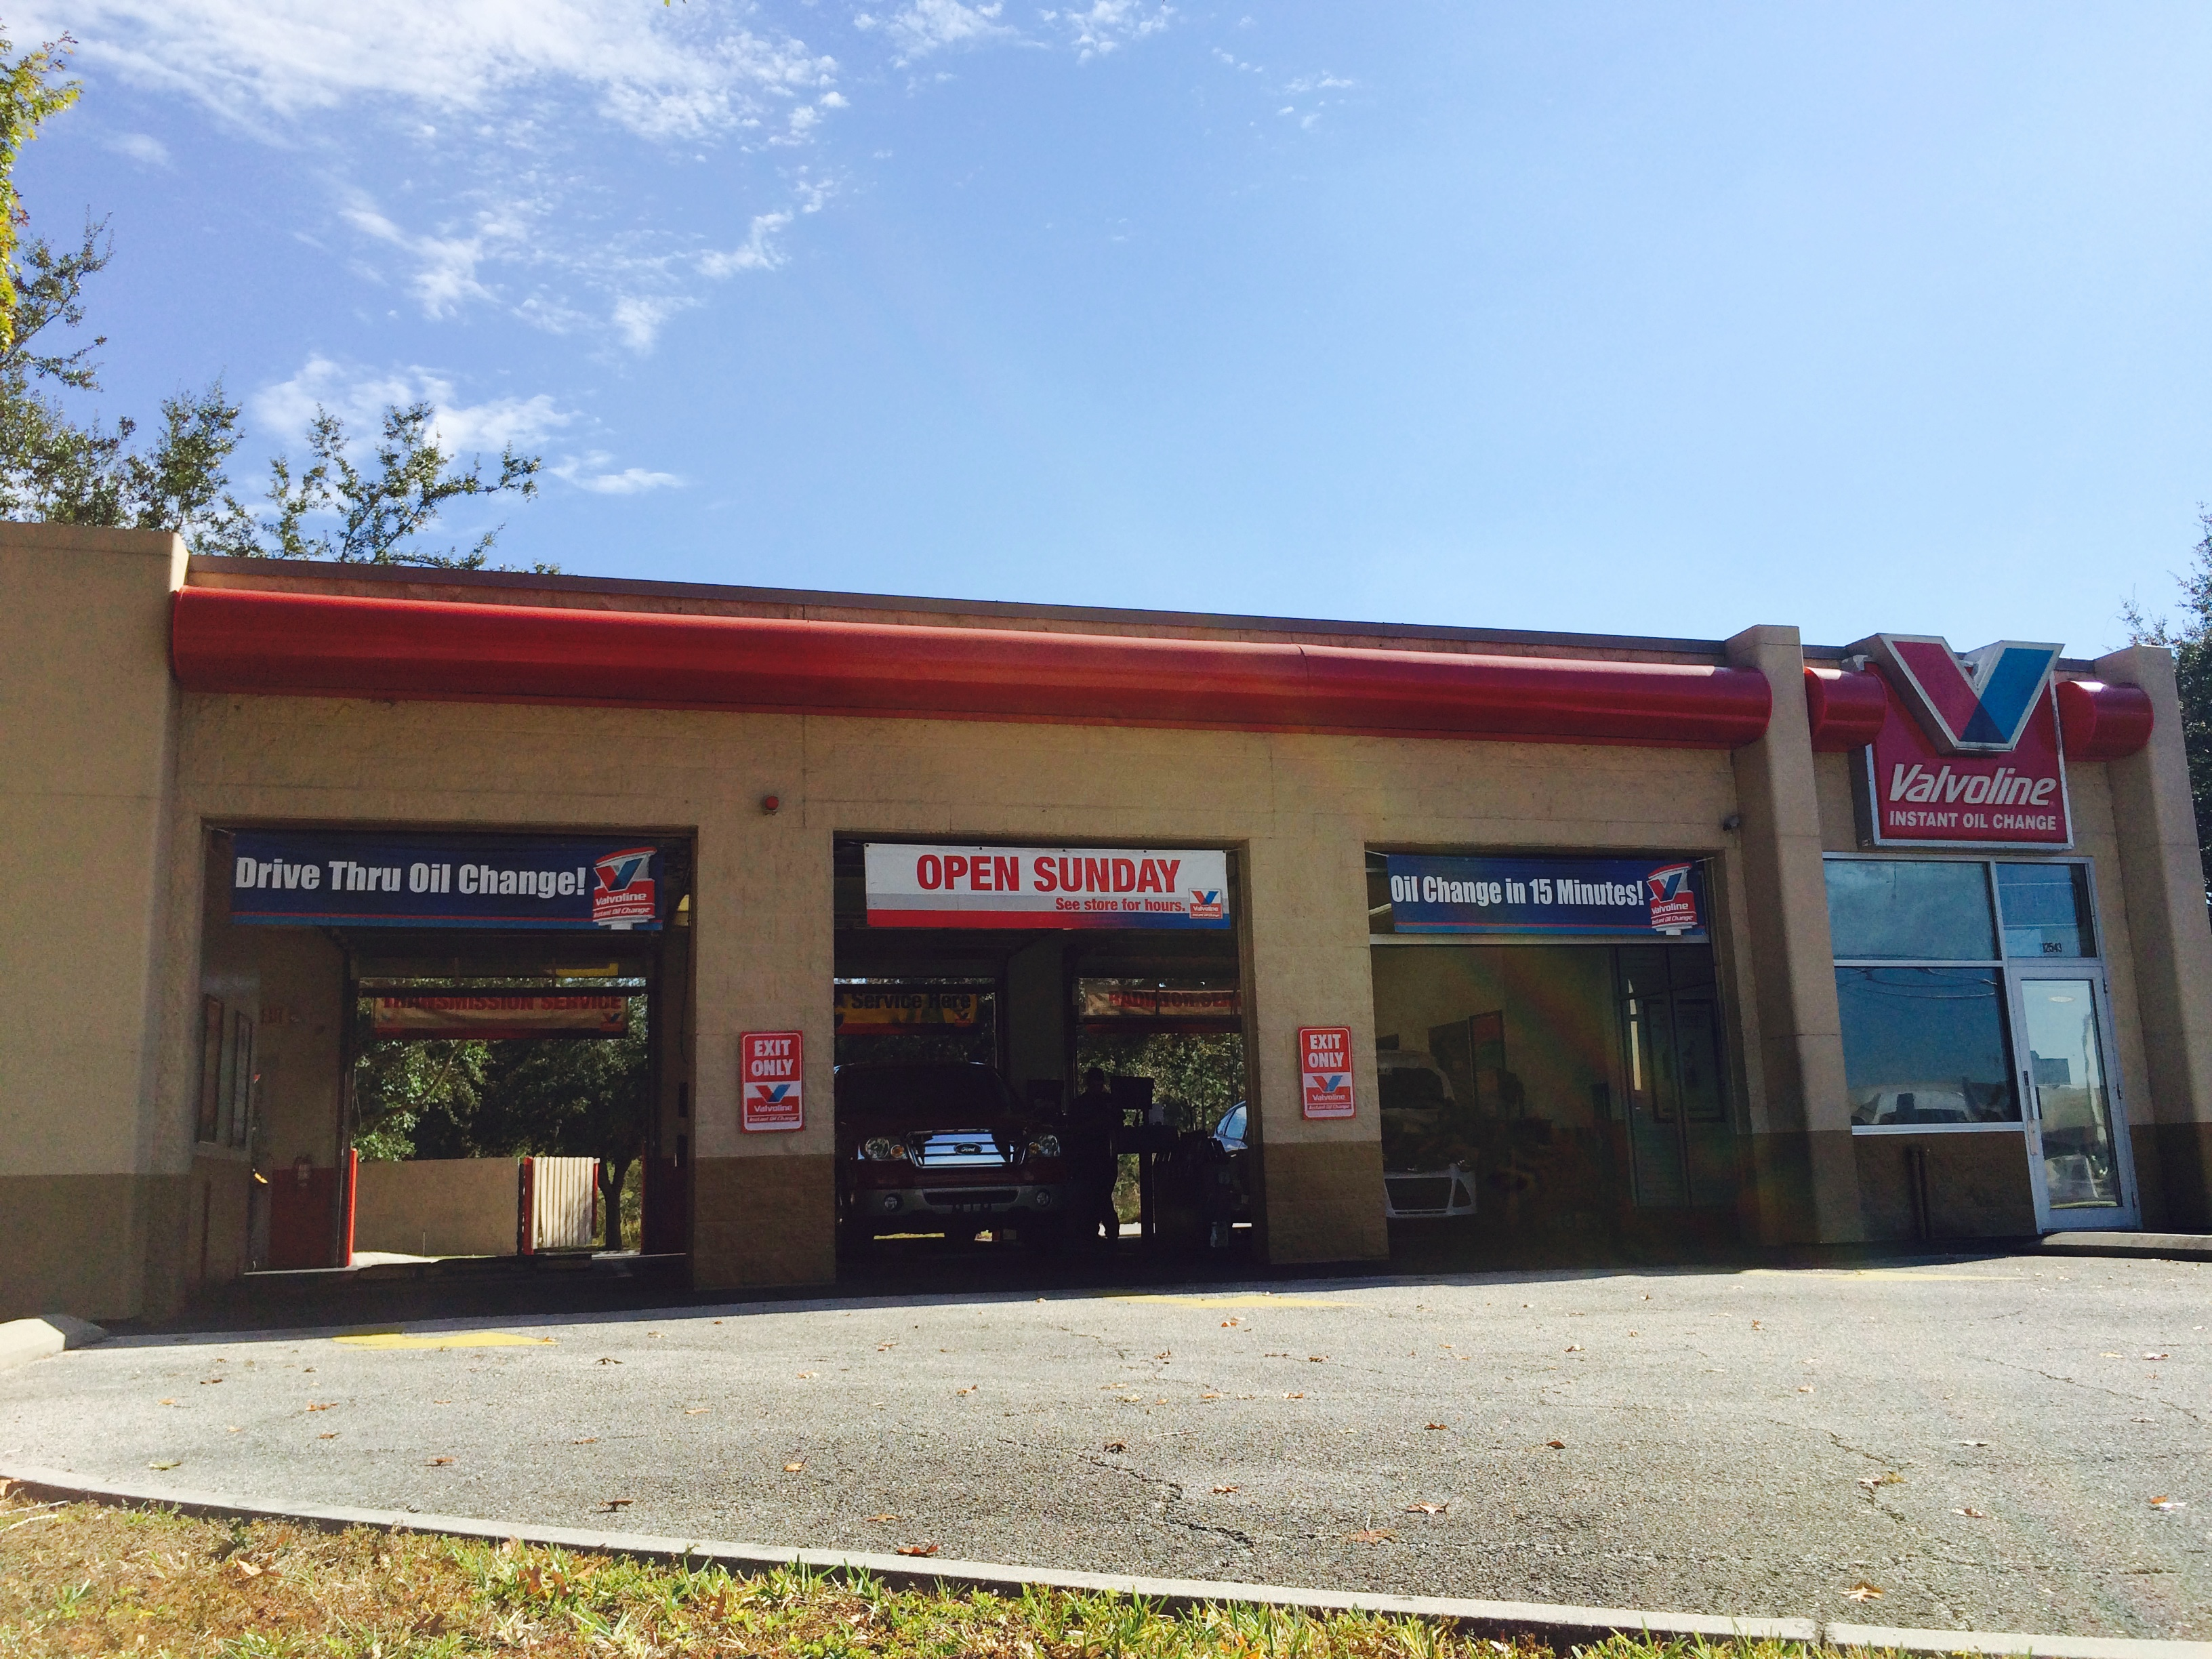 Valvoline Instant Oil Change Orlando Fl 12543 South Orange Blossom